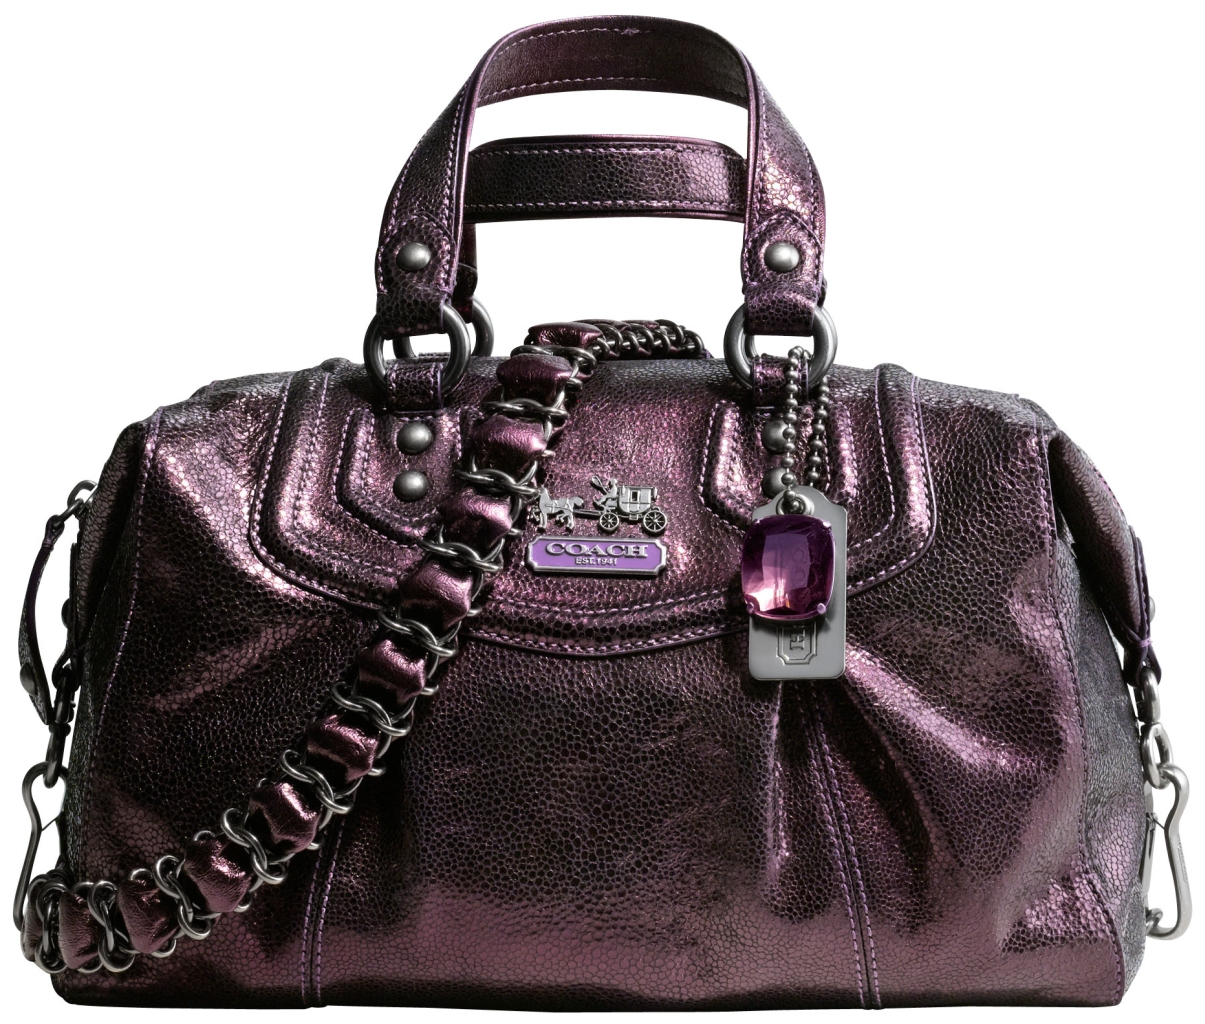 ad5f1ee1321d chanel 30226 bags replica online buy chanel purses bags cheap